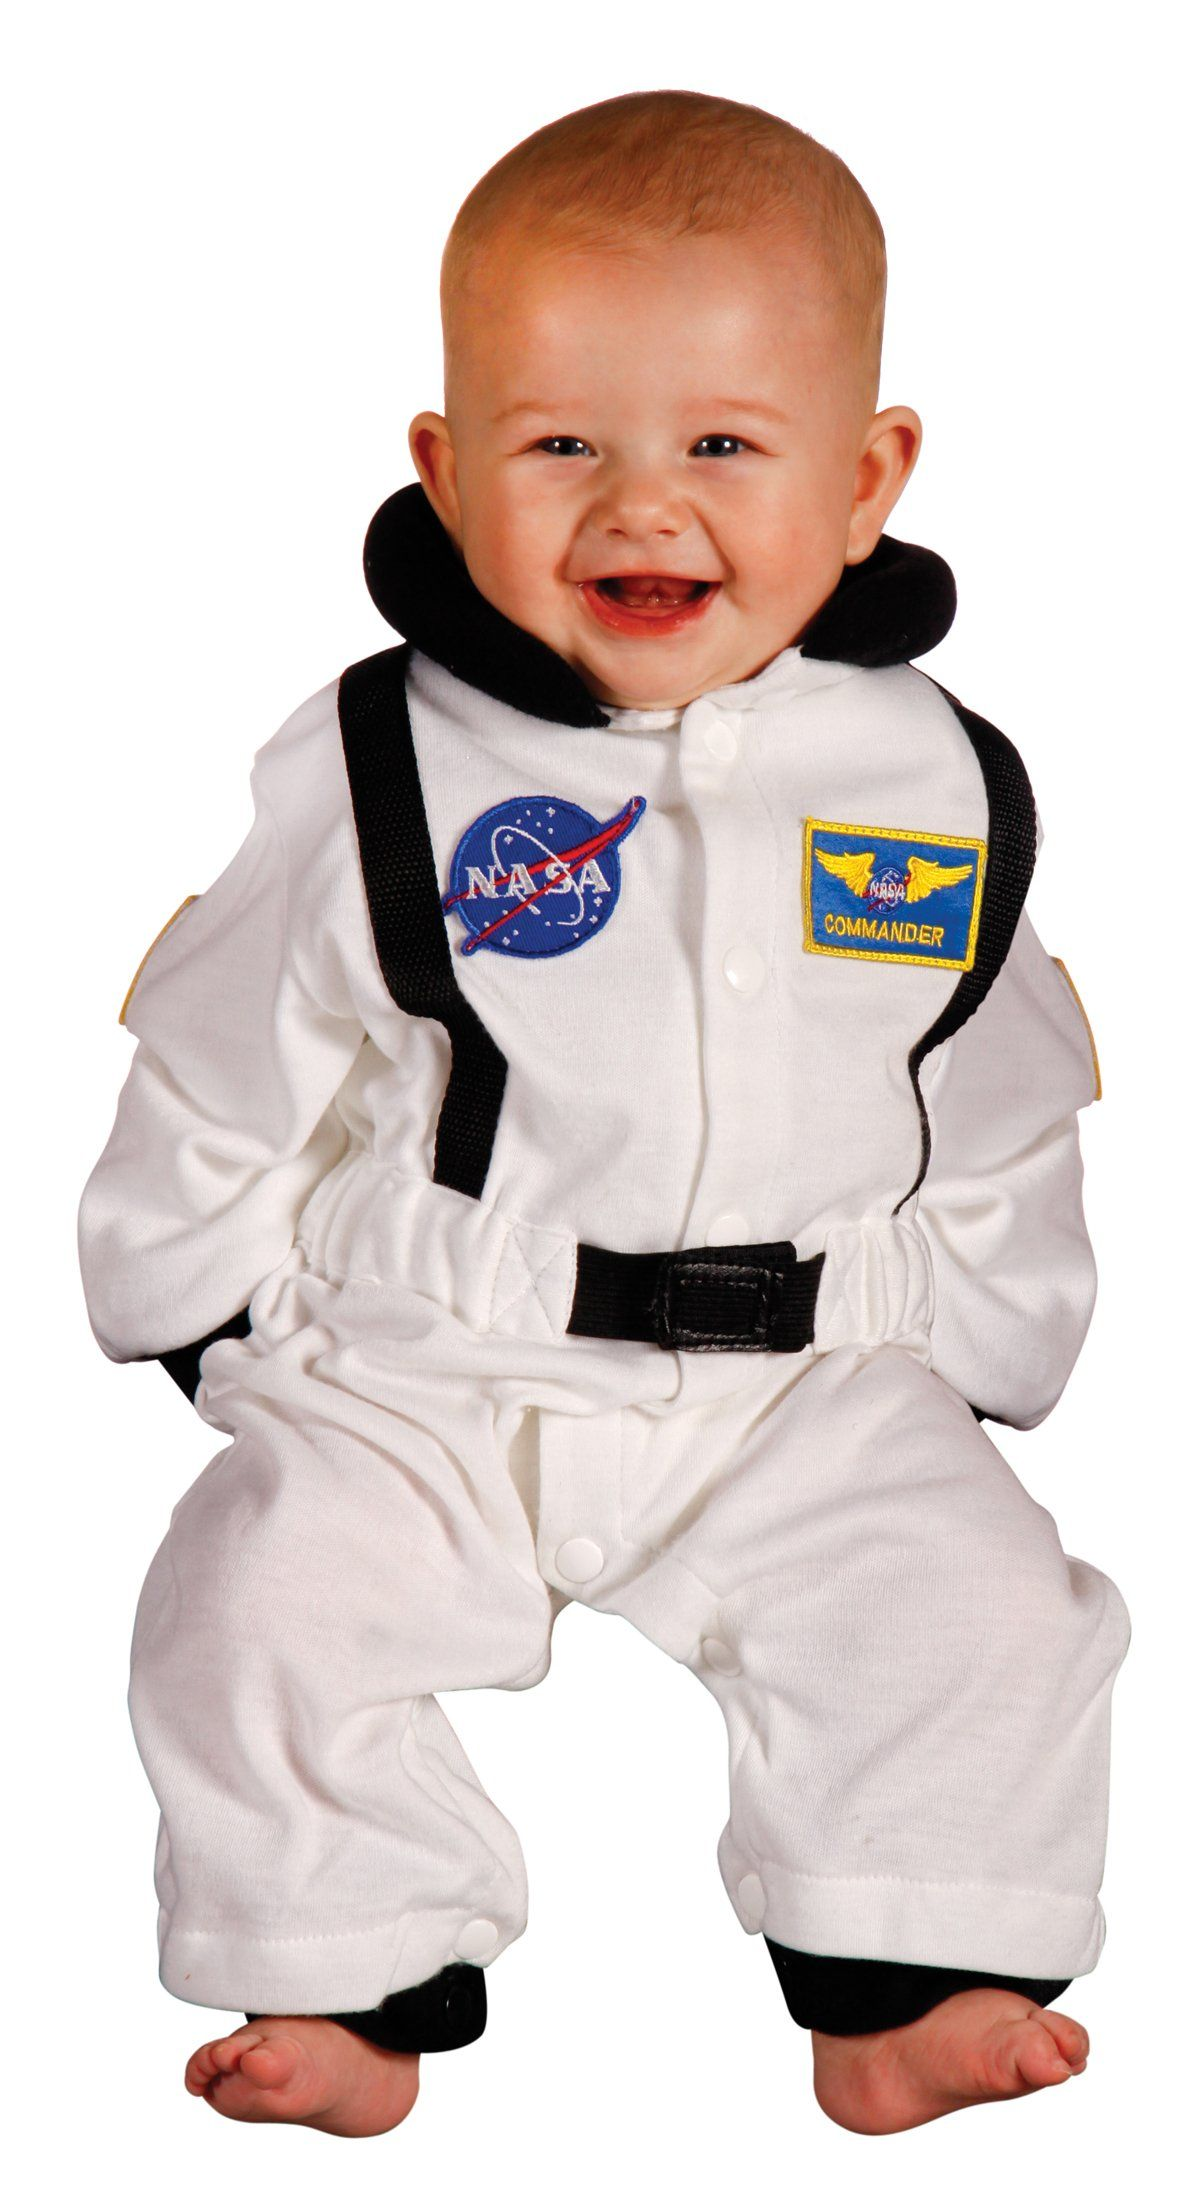 aeromax jr astronaut suit with nasa patches and diaper snaps white size 6 - Diaper Costume Halloween